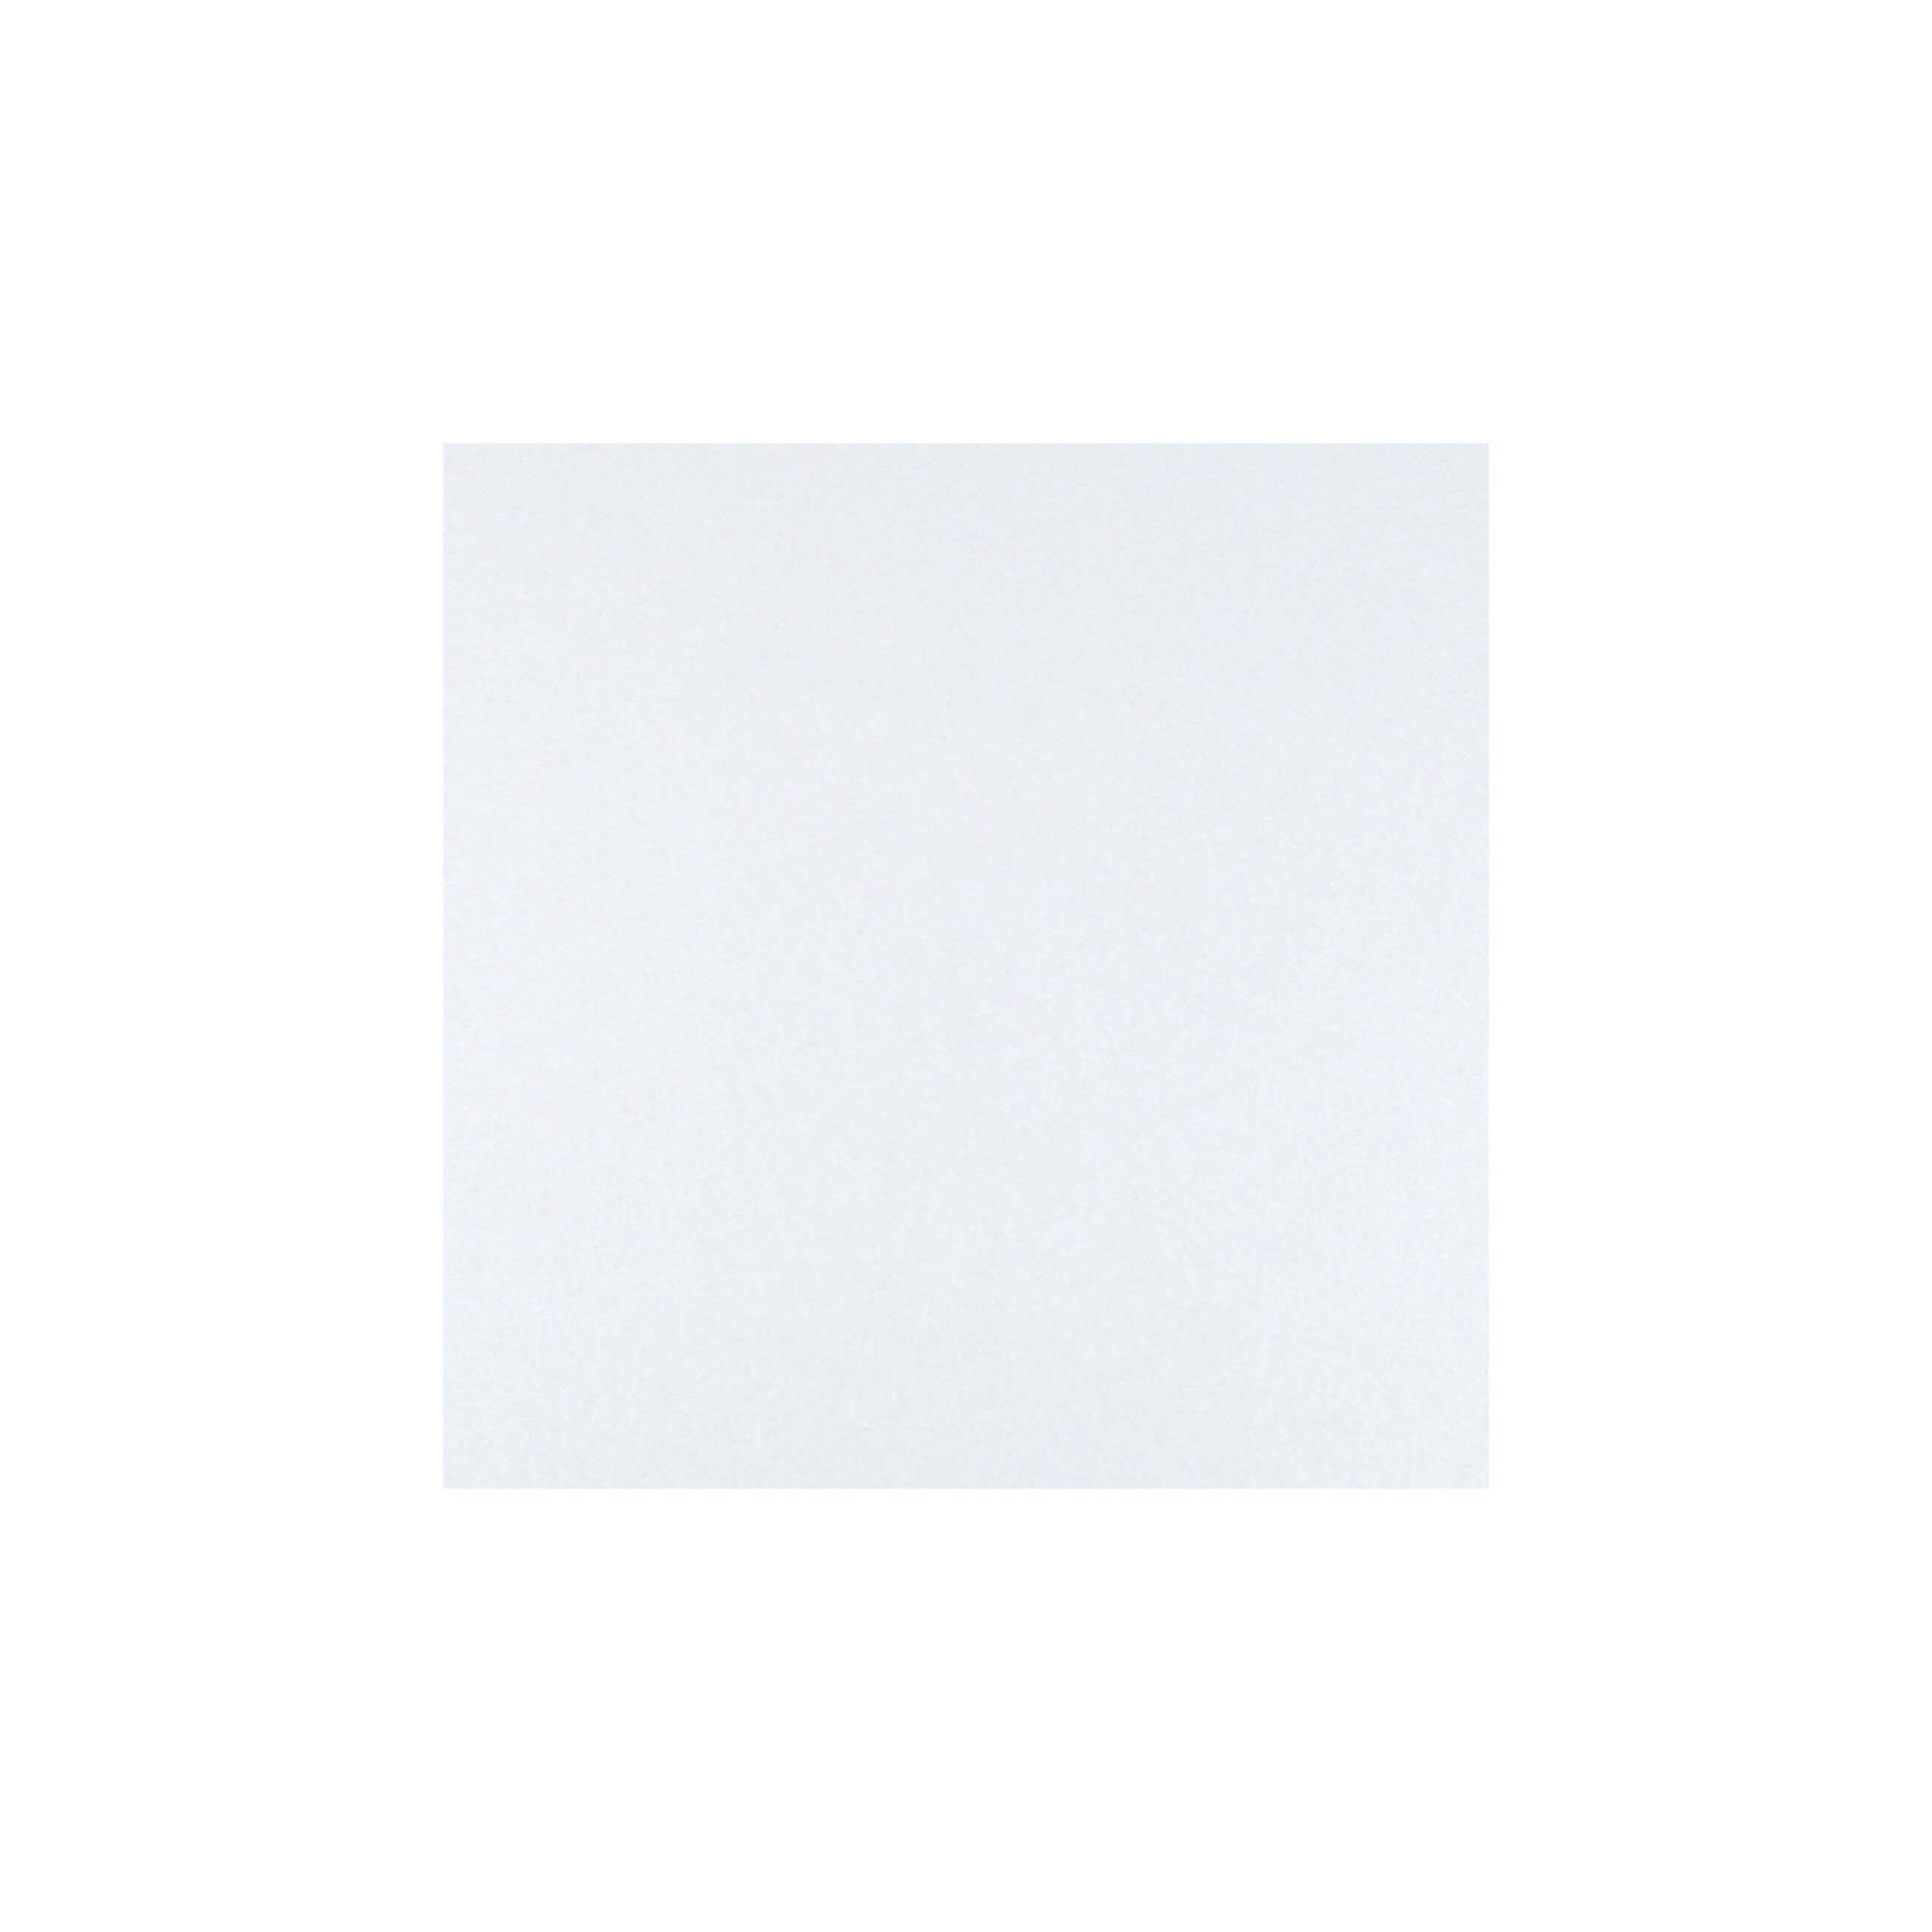 Cardstock 119mm Square - Crystal White